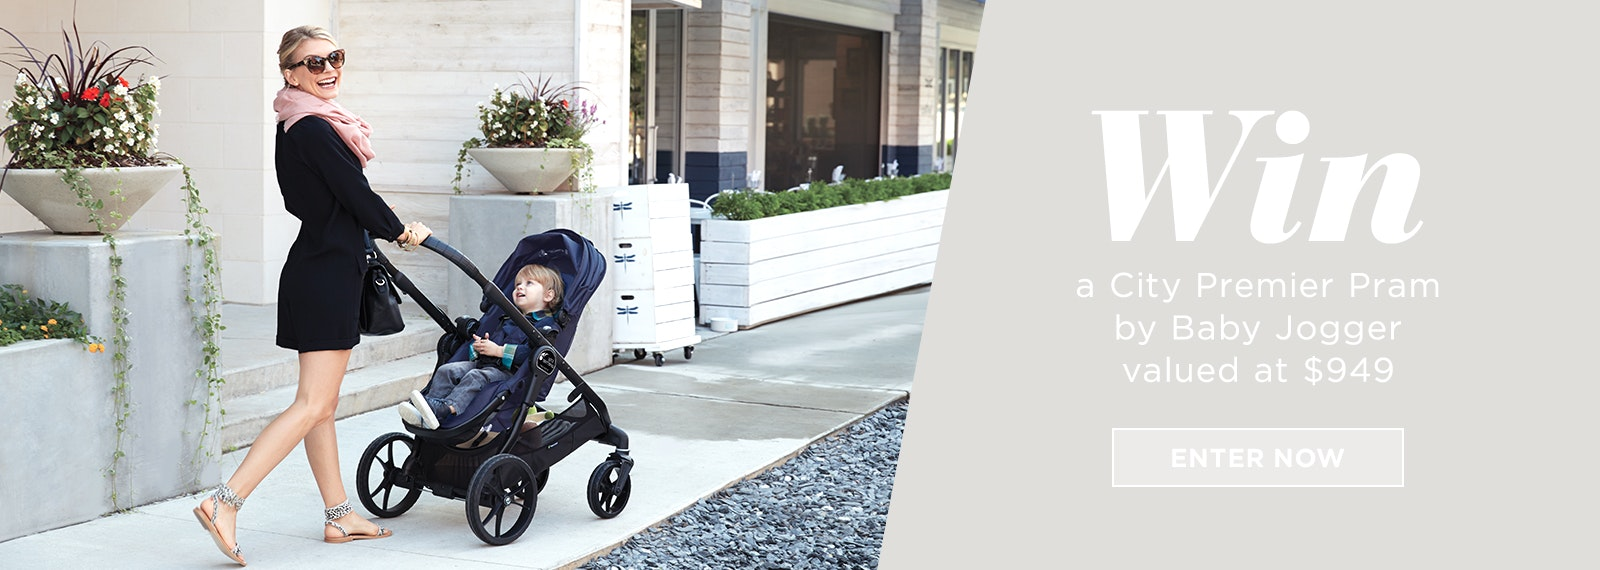 Win a City Premier Pram from Baby Jogger valued at $949!